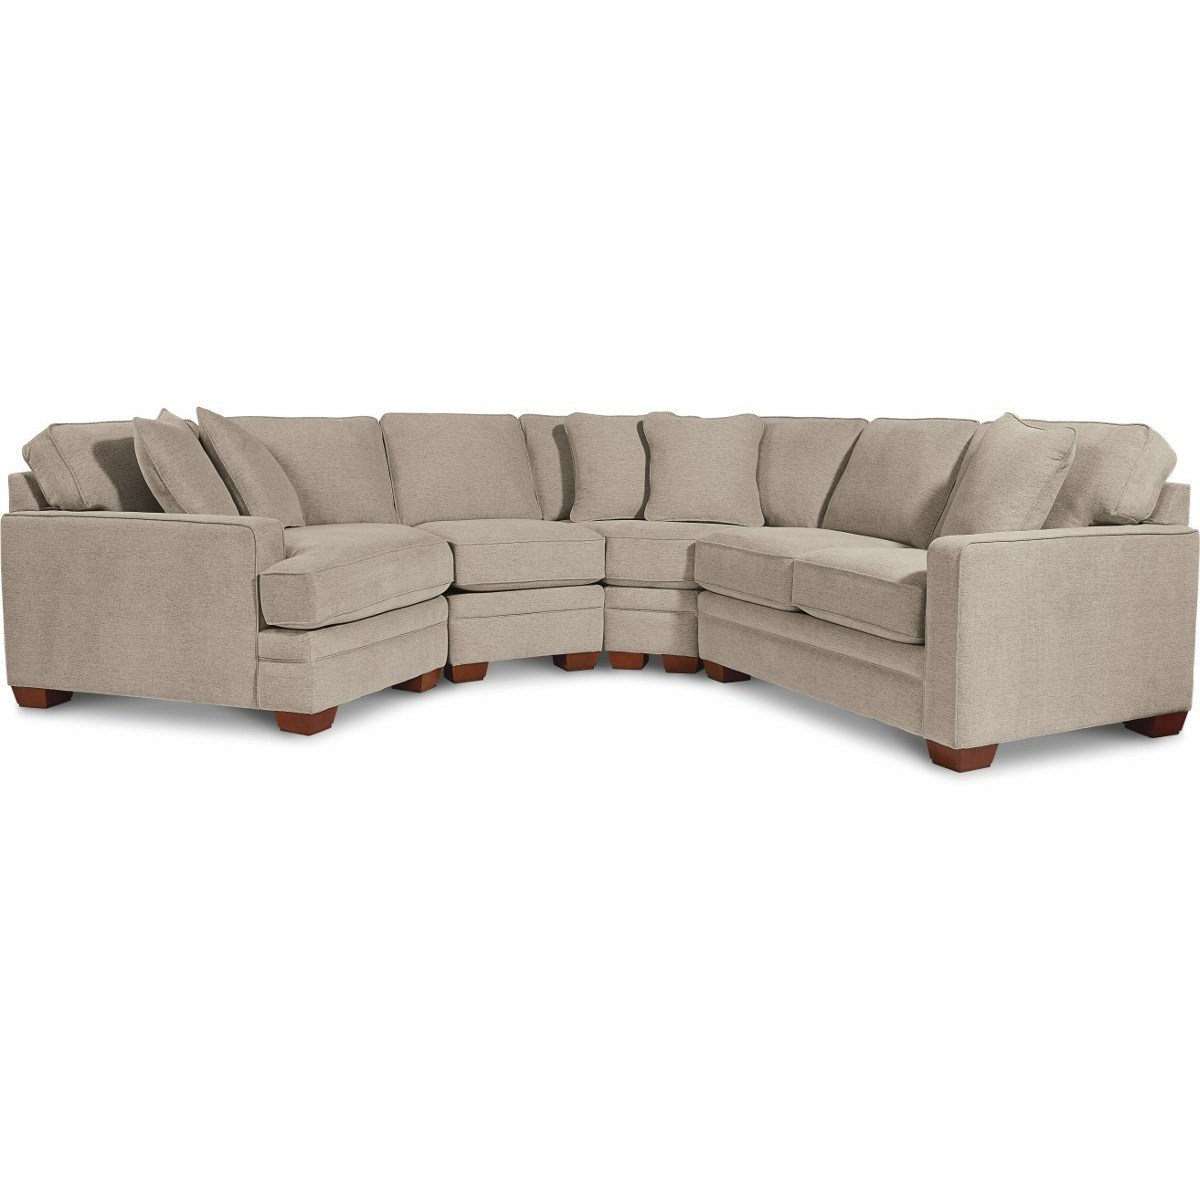 Contemporary 4-Piece Sectional with Right-Sitting Cuddler